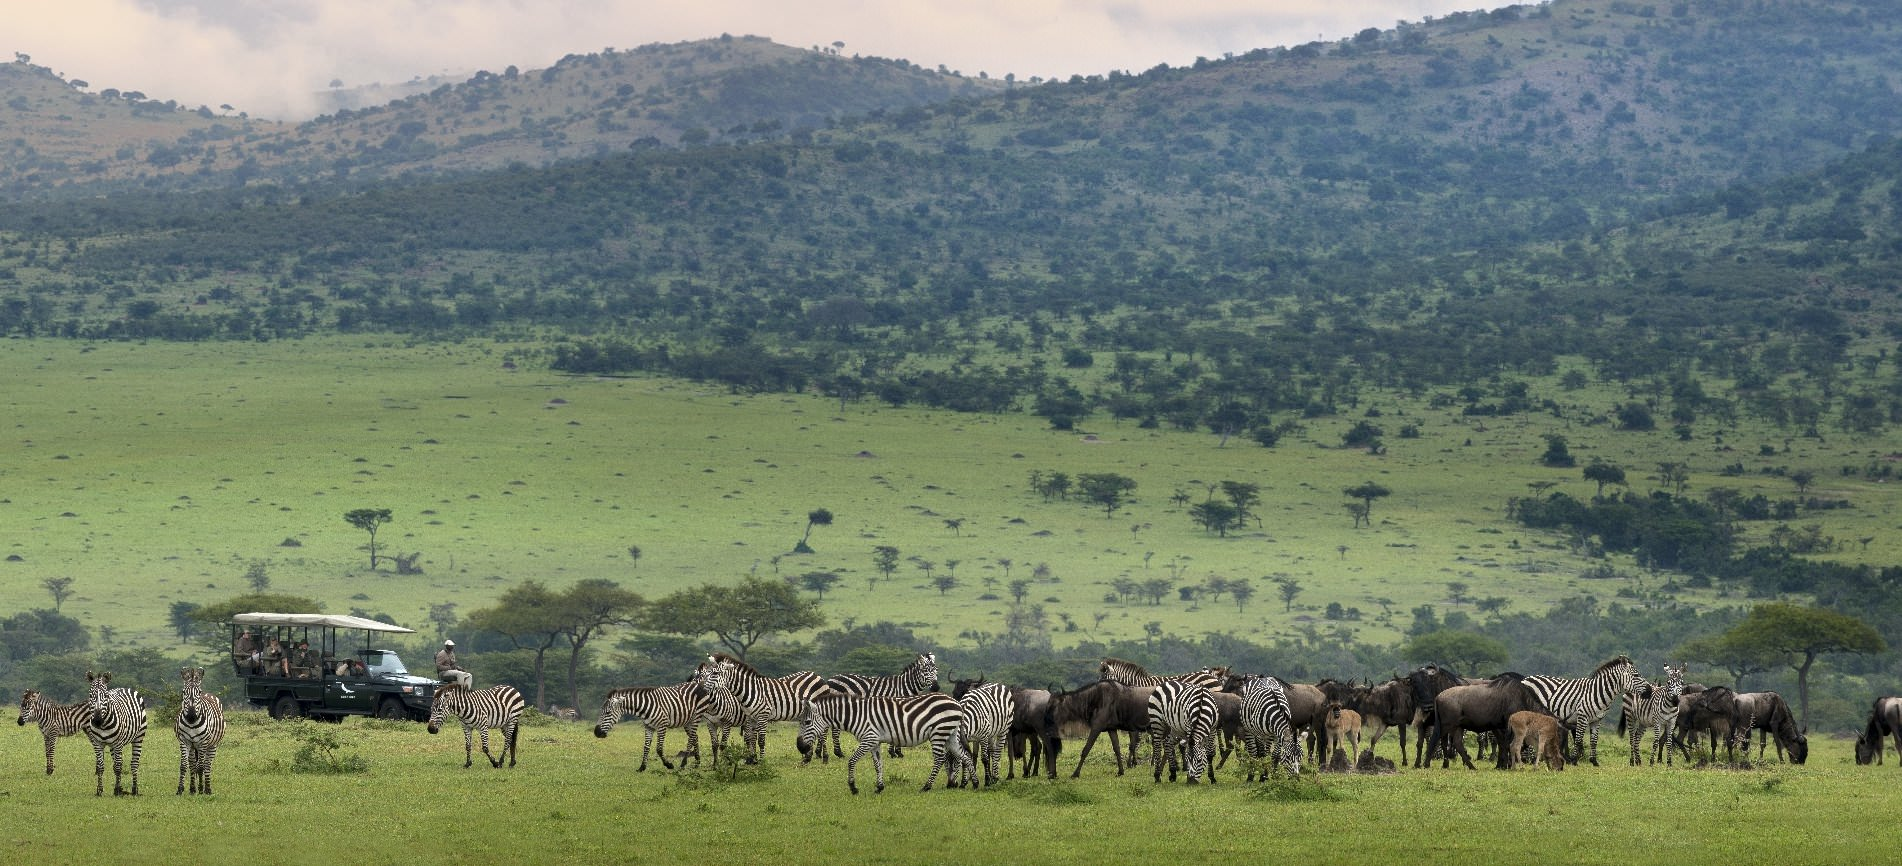 The Great Migration & Mara River Crossing